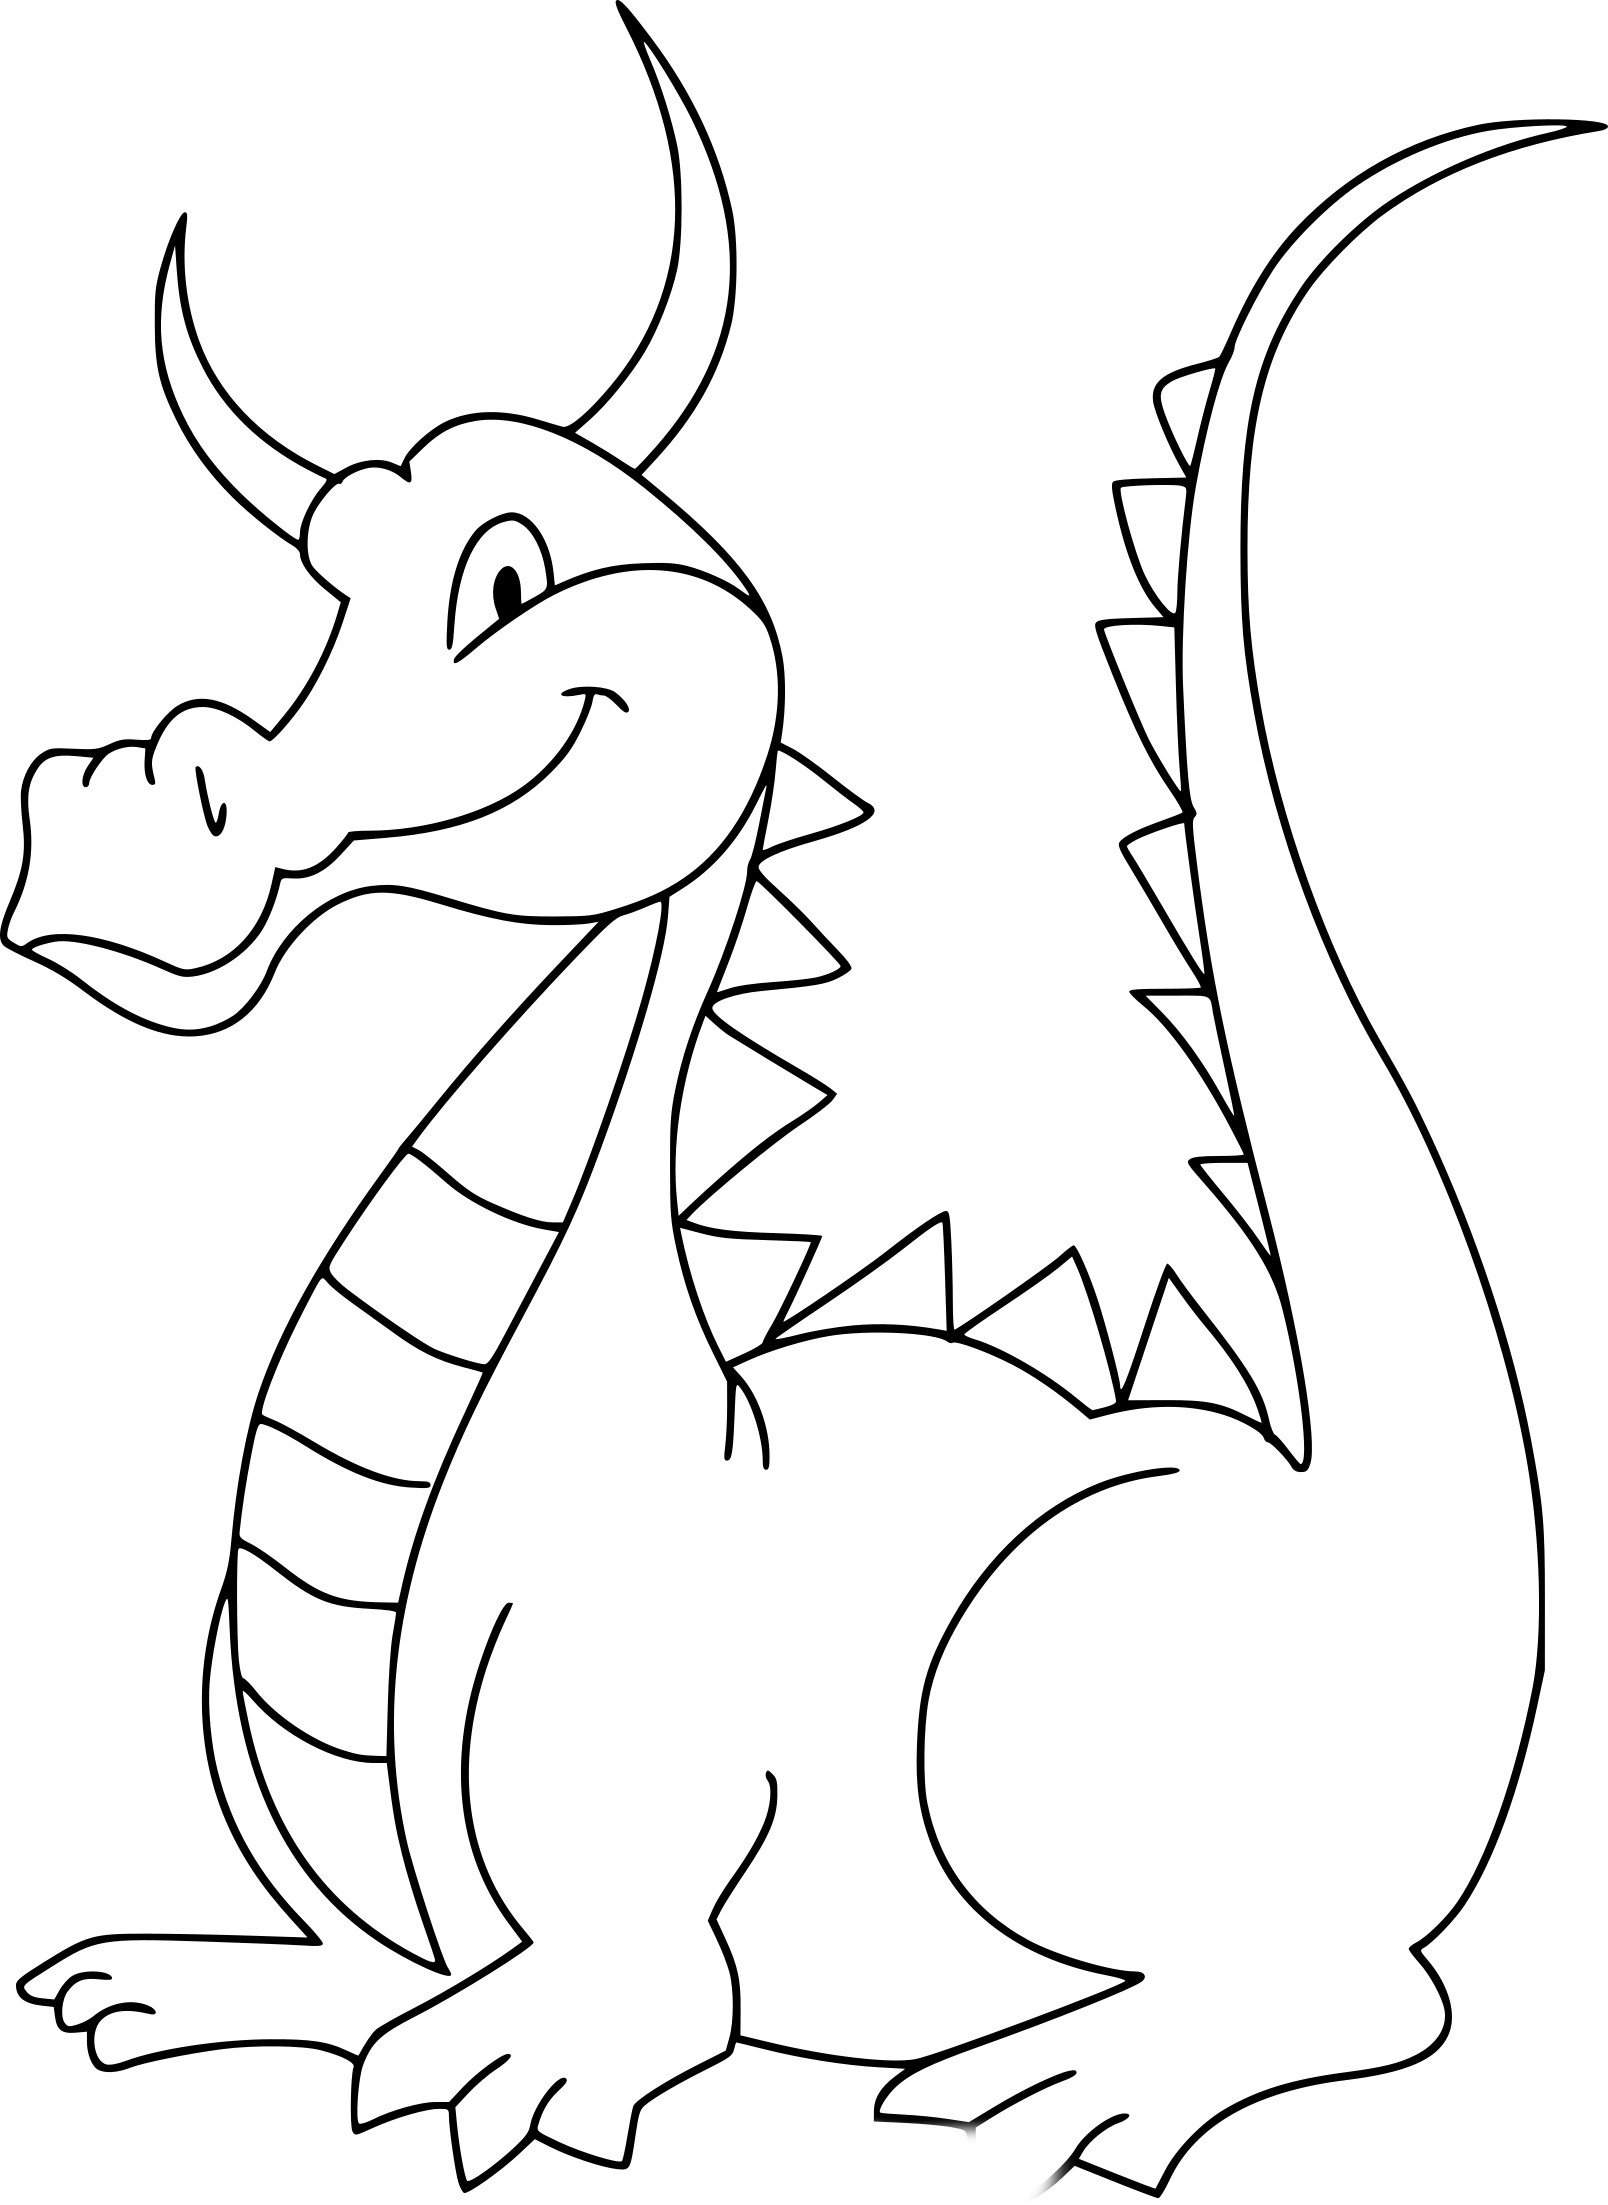 Coloriage Dragon Simple à Imprimer Sur Coloriages Info